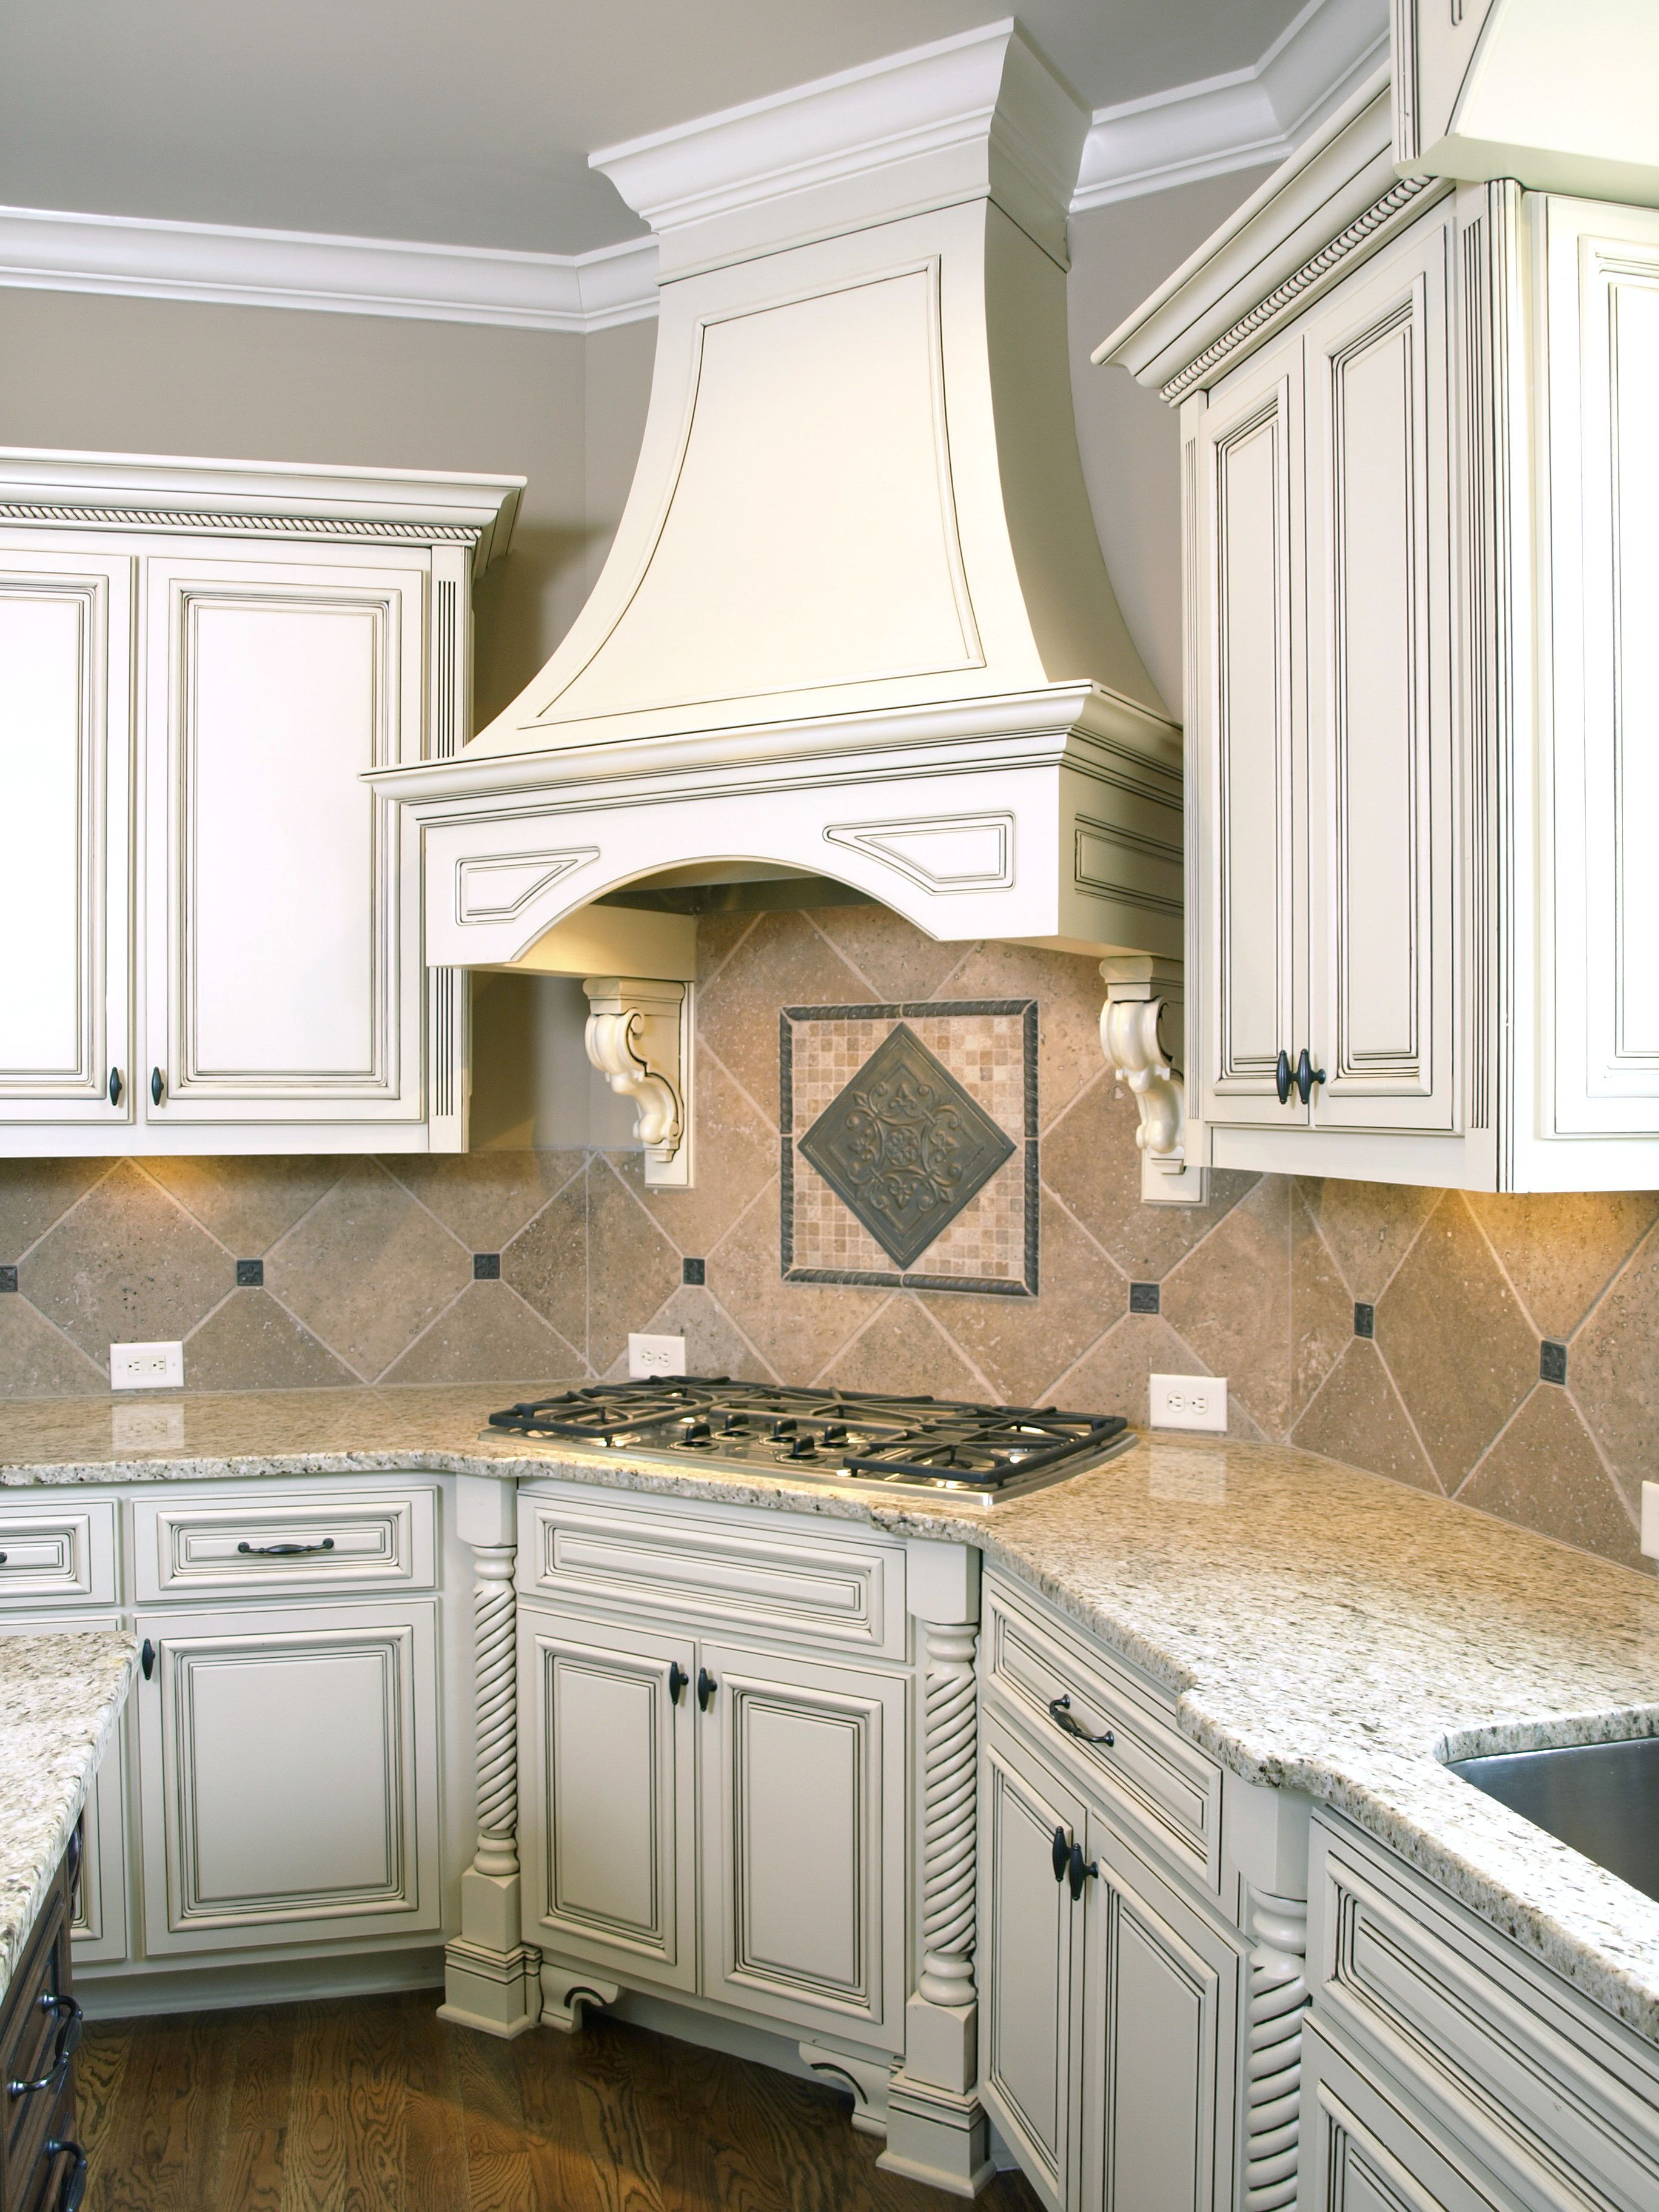 Gorgeous White Kitchen Cabinets With Crown Moldings And Built In Oven Luxury Kitchens Victorian Kitchen Cabinets Kitchen Design